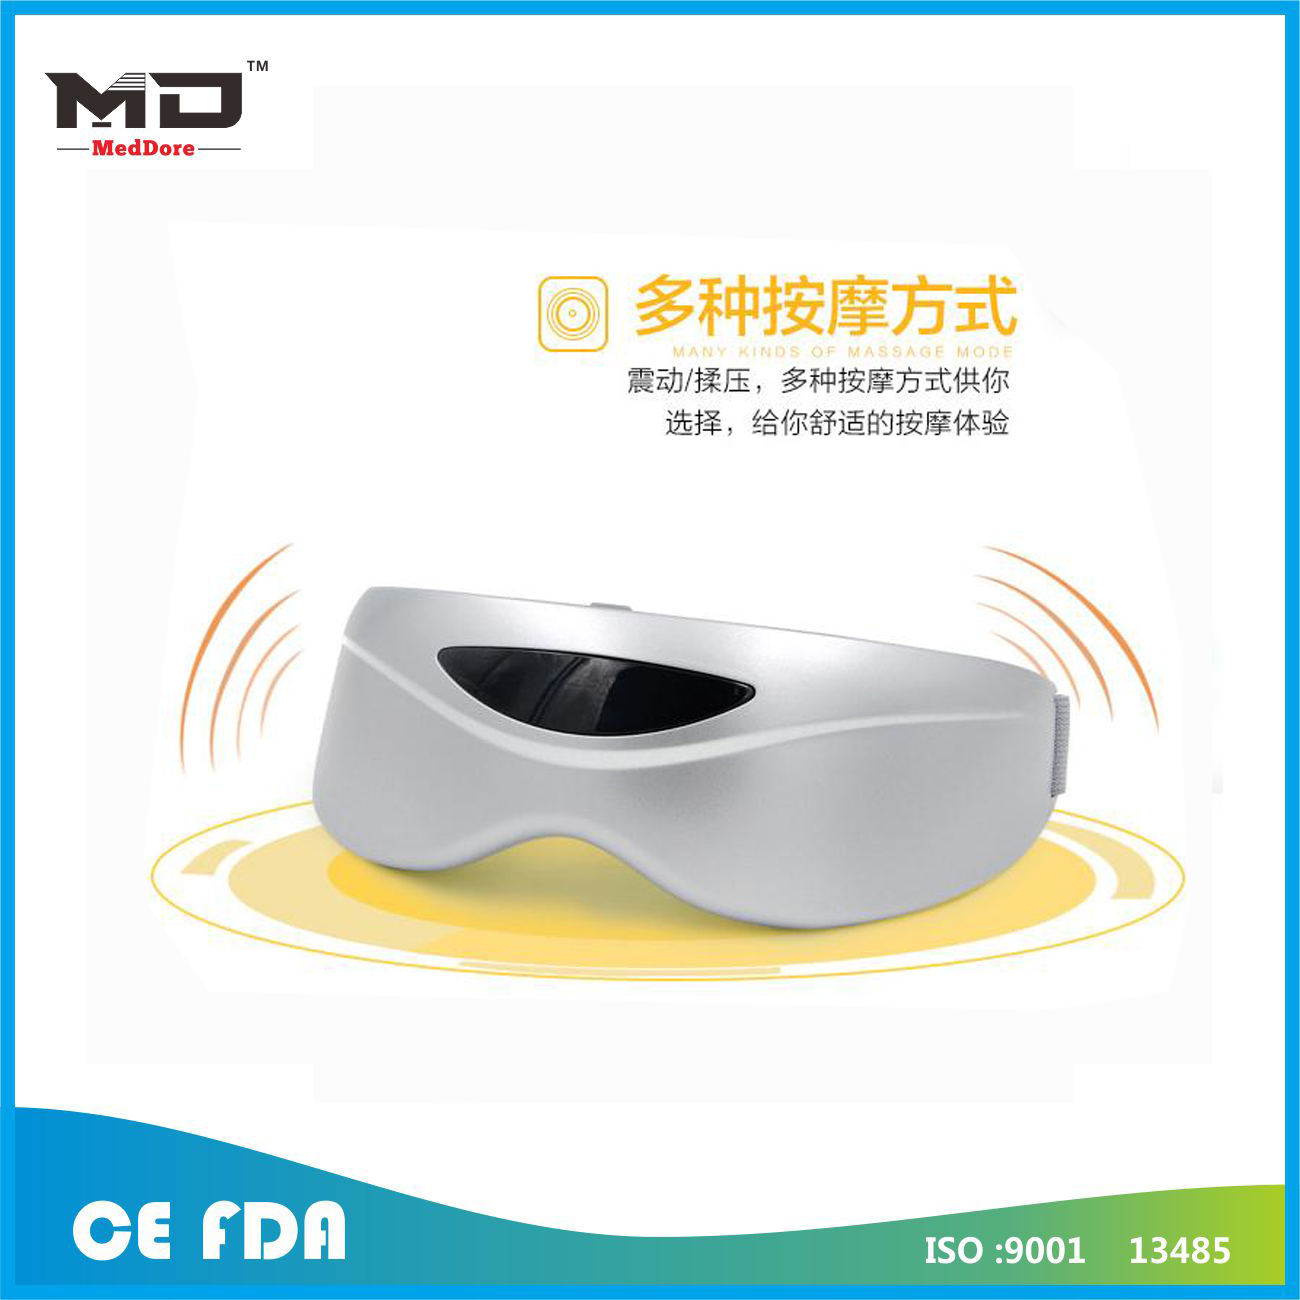 Meddore eye care massager eye relaxation eye massage glasses Electric Air pressure Eye massager